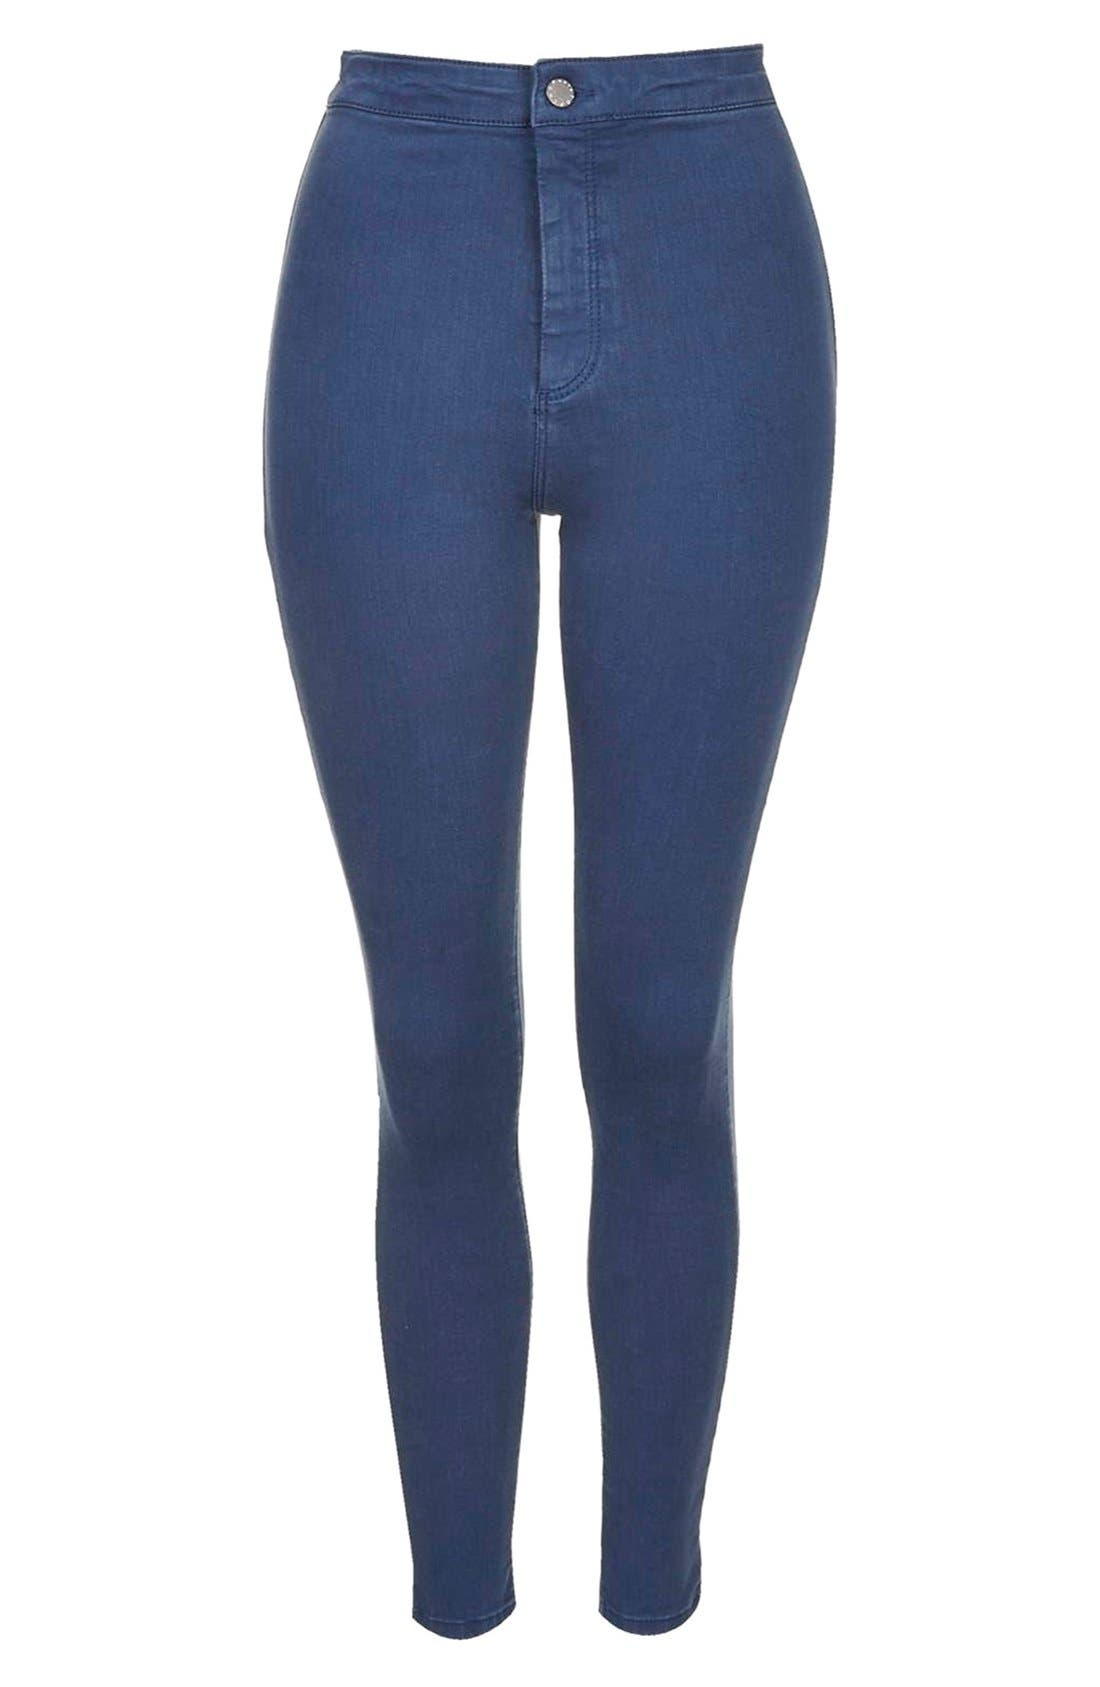 Alternate Image 4  - Topshop Moto 'Joni' High Rise Skinny Jeans (Blue)